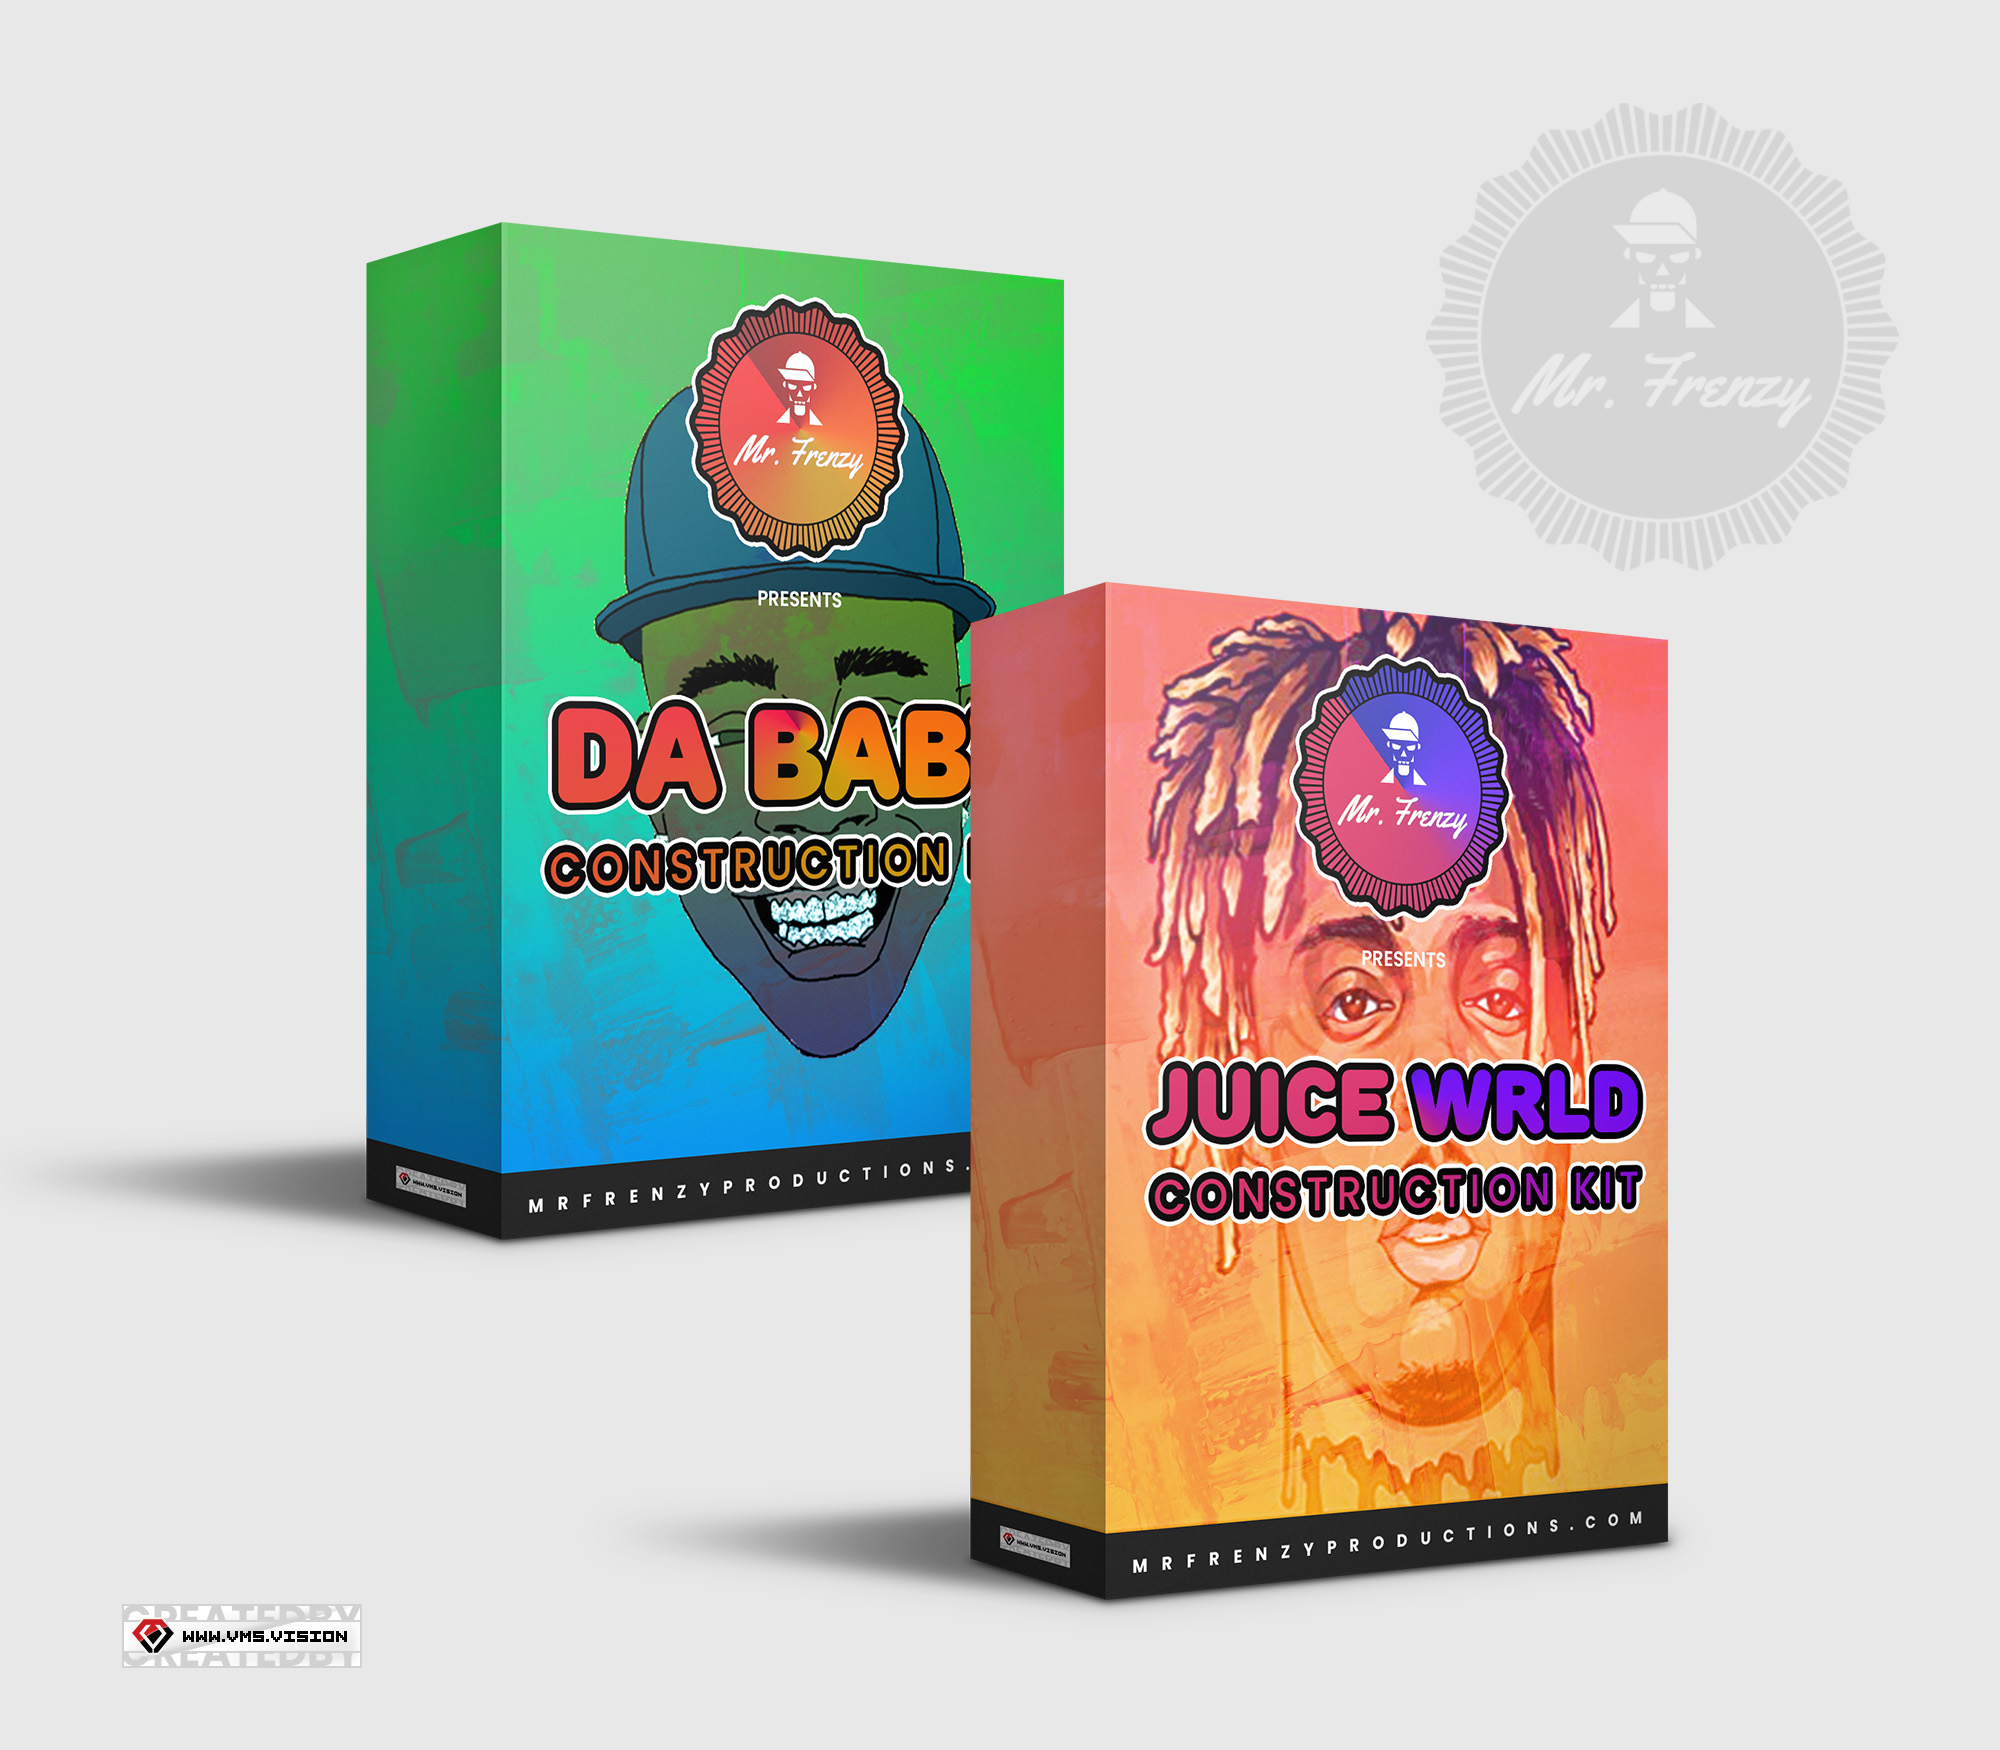 Mr Frenzy – Da Baby and Juice Wrld Construction Kits